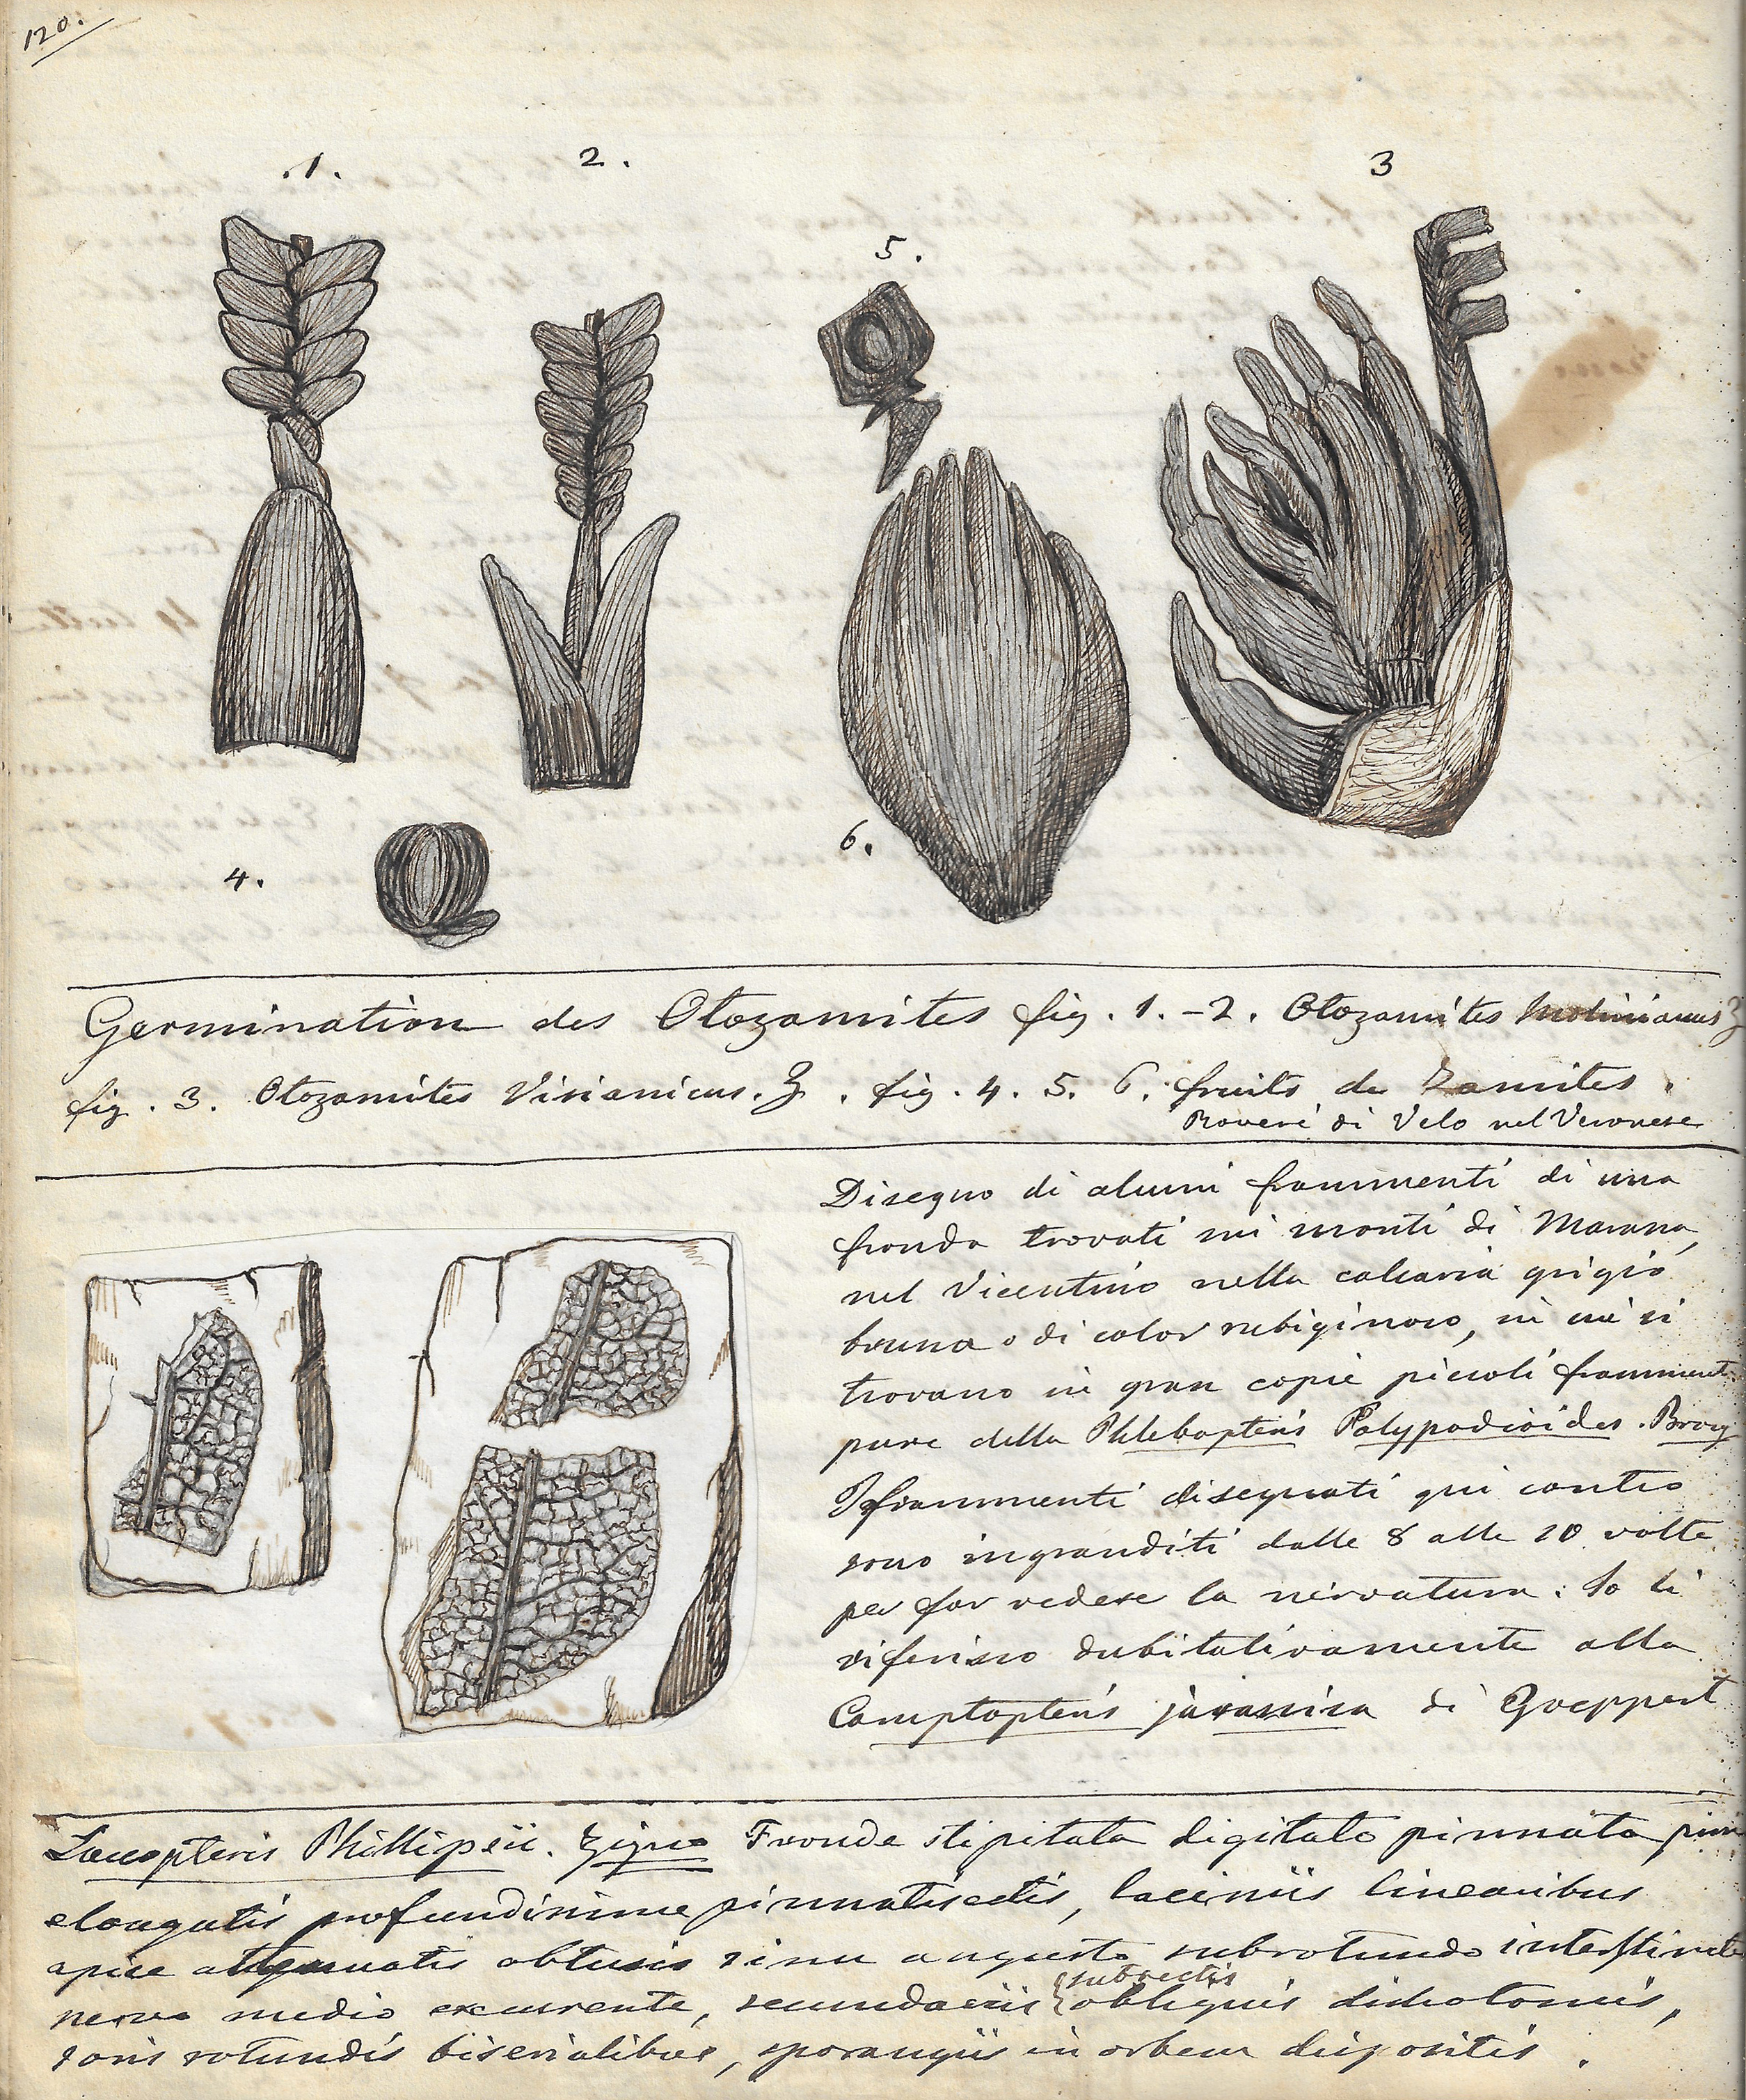 A page from Quaderno di campagna C